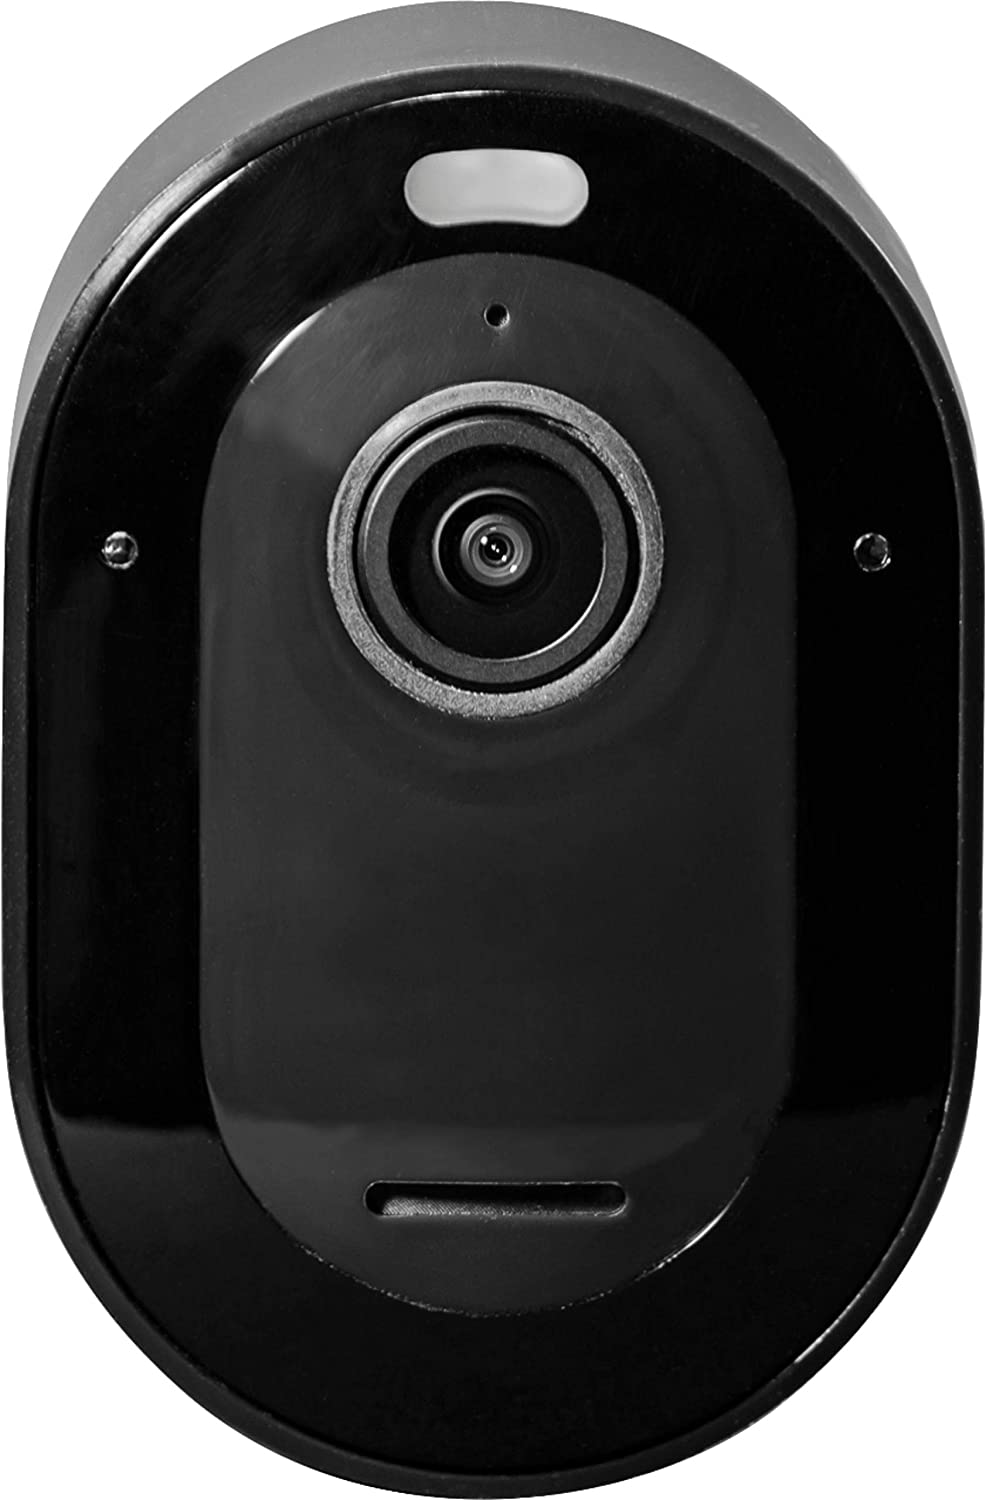 Arlo Ultra - 4K UHD Wire-Free Security 1 Camera System | Indoor/Outdoor with Color Night Vision, 180° View, 2-Way Audio, Spotlight, Siren | Works with Alexa and HomeKit | Black, Add on Camera